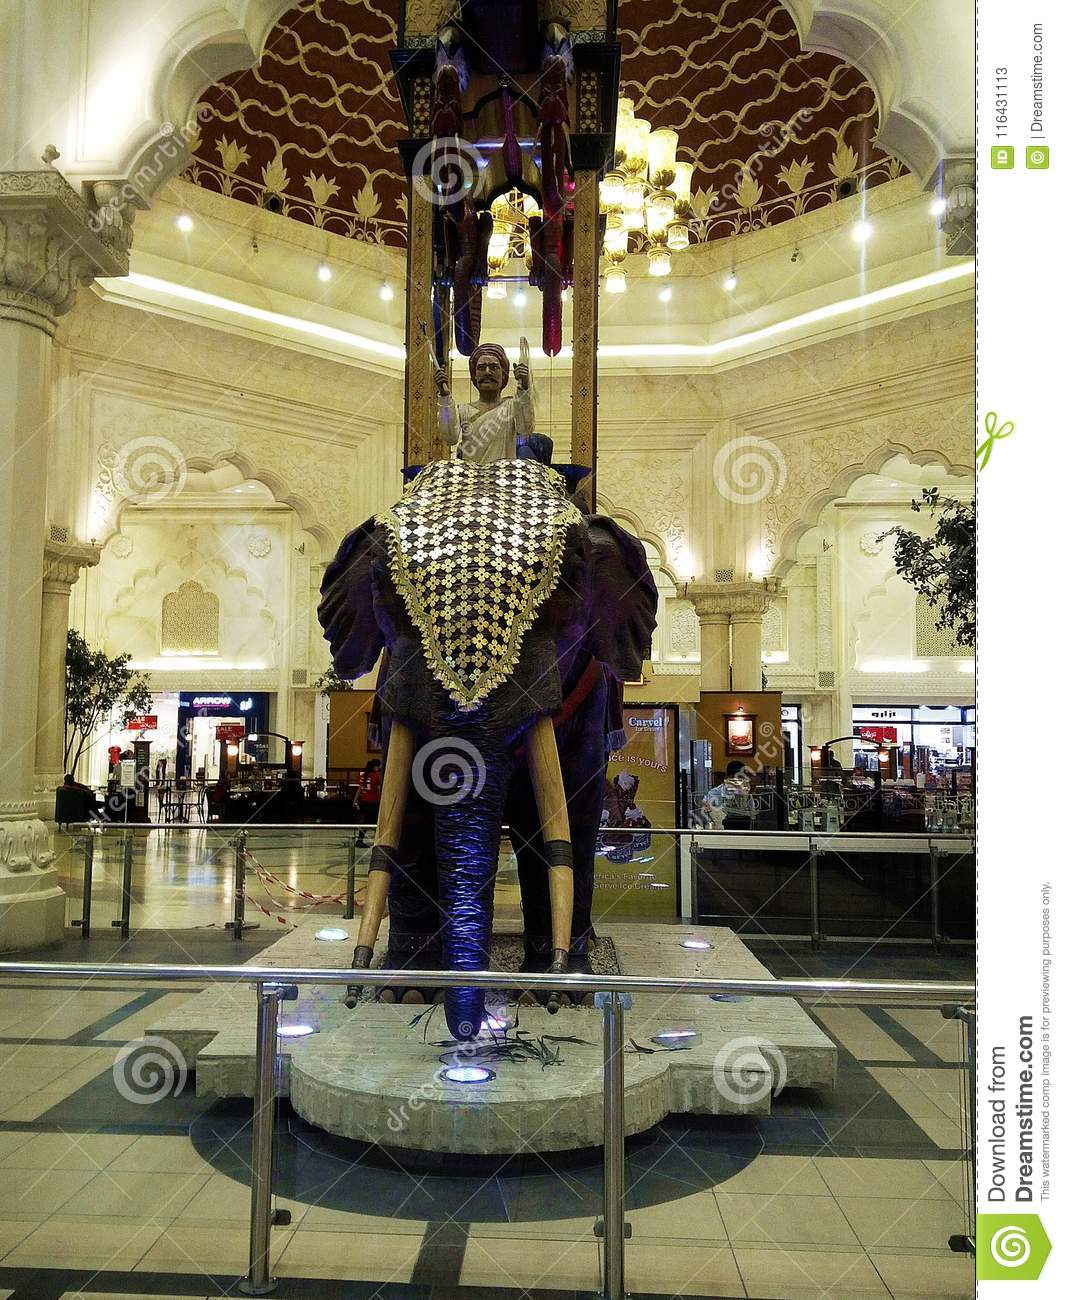 India Court With Elephant Statue At IBN Battuta Mall